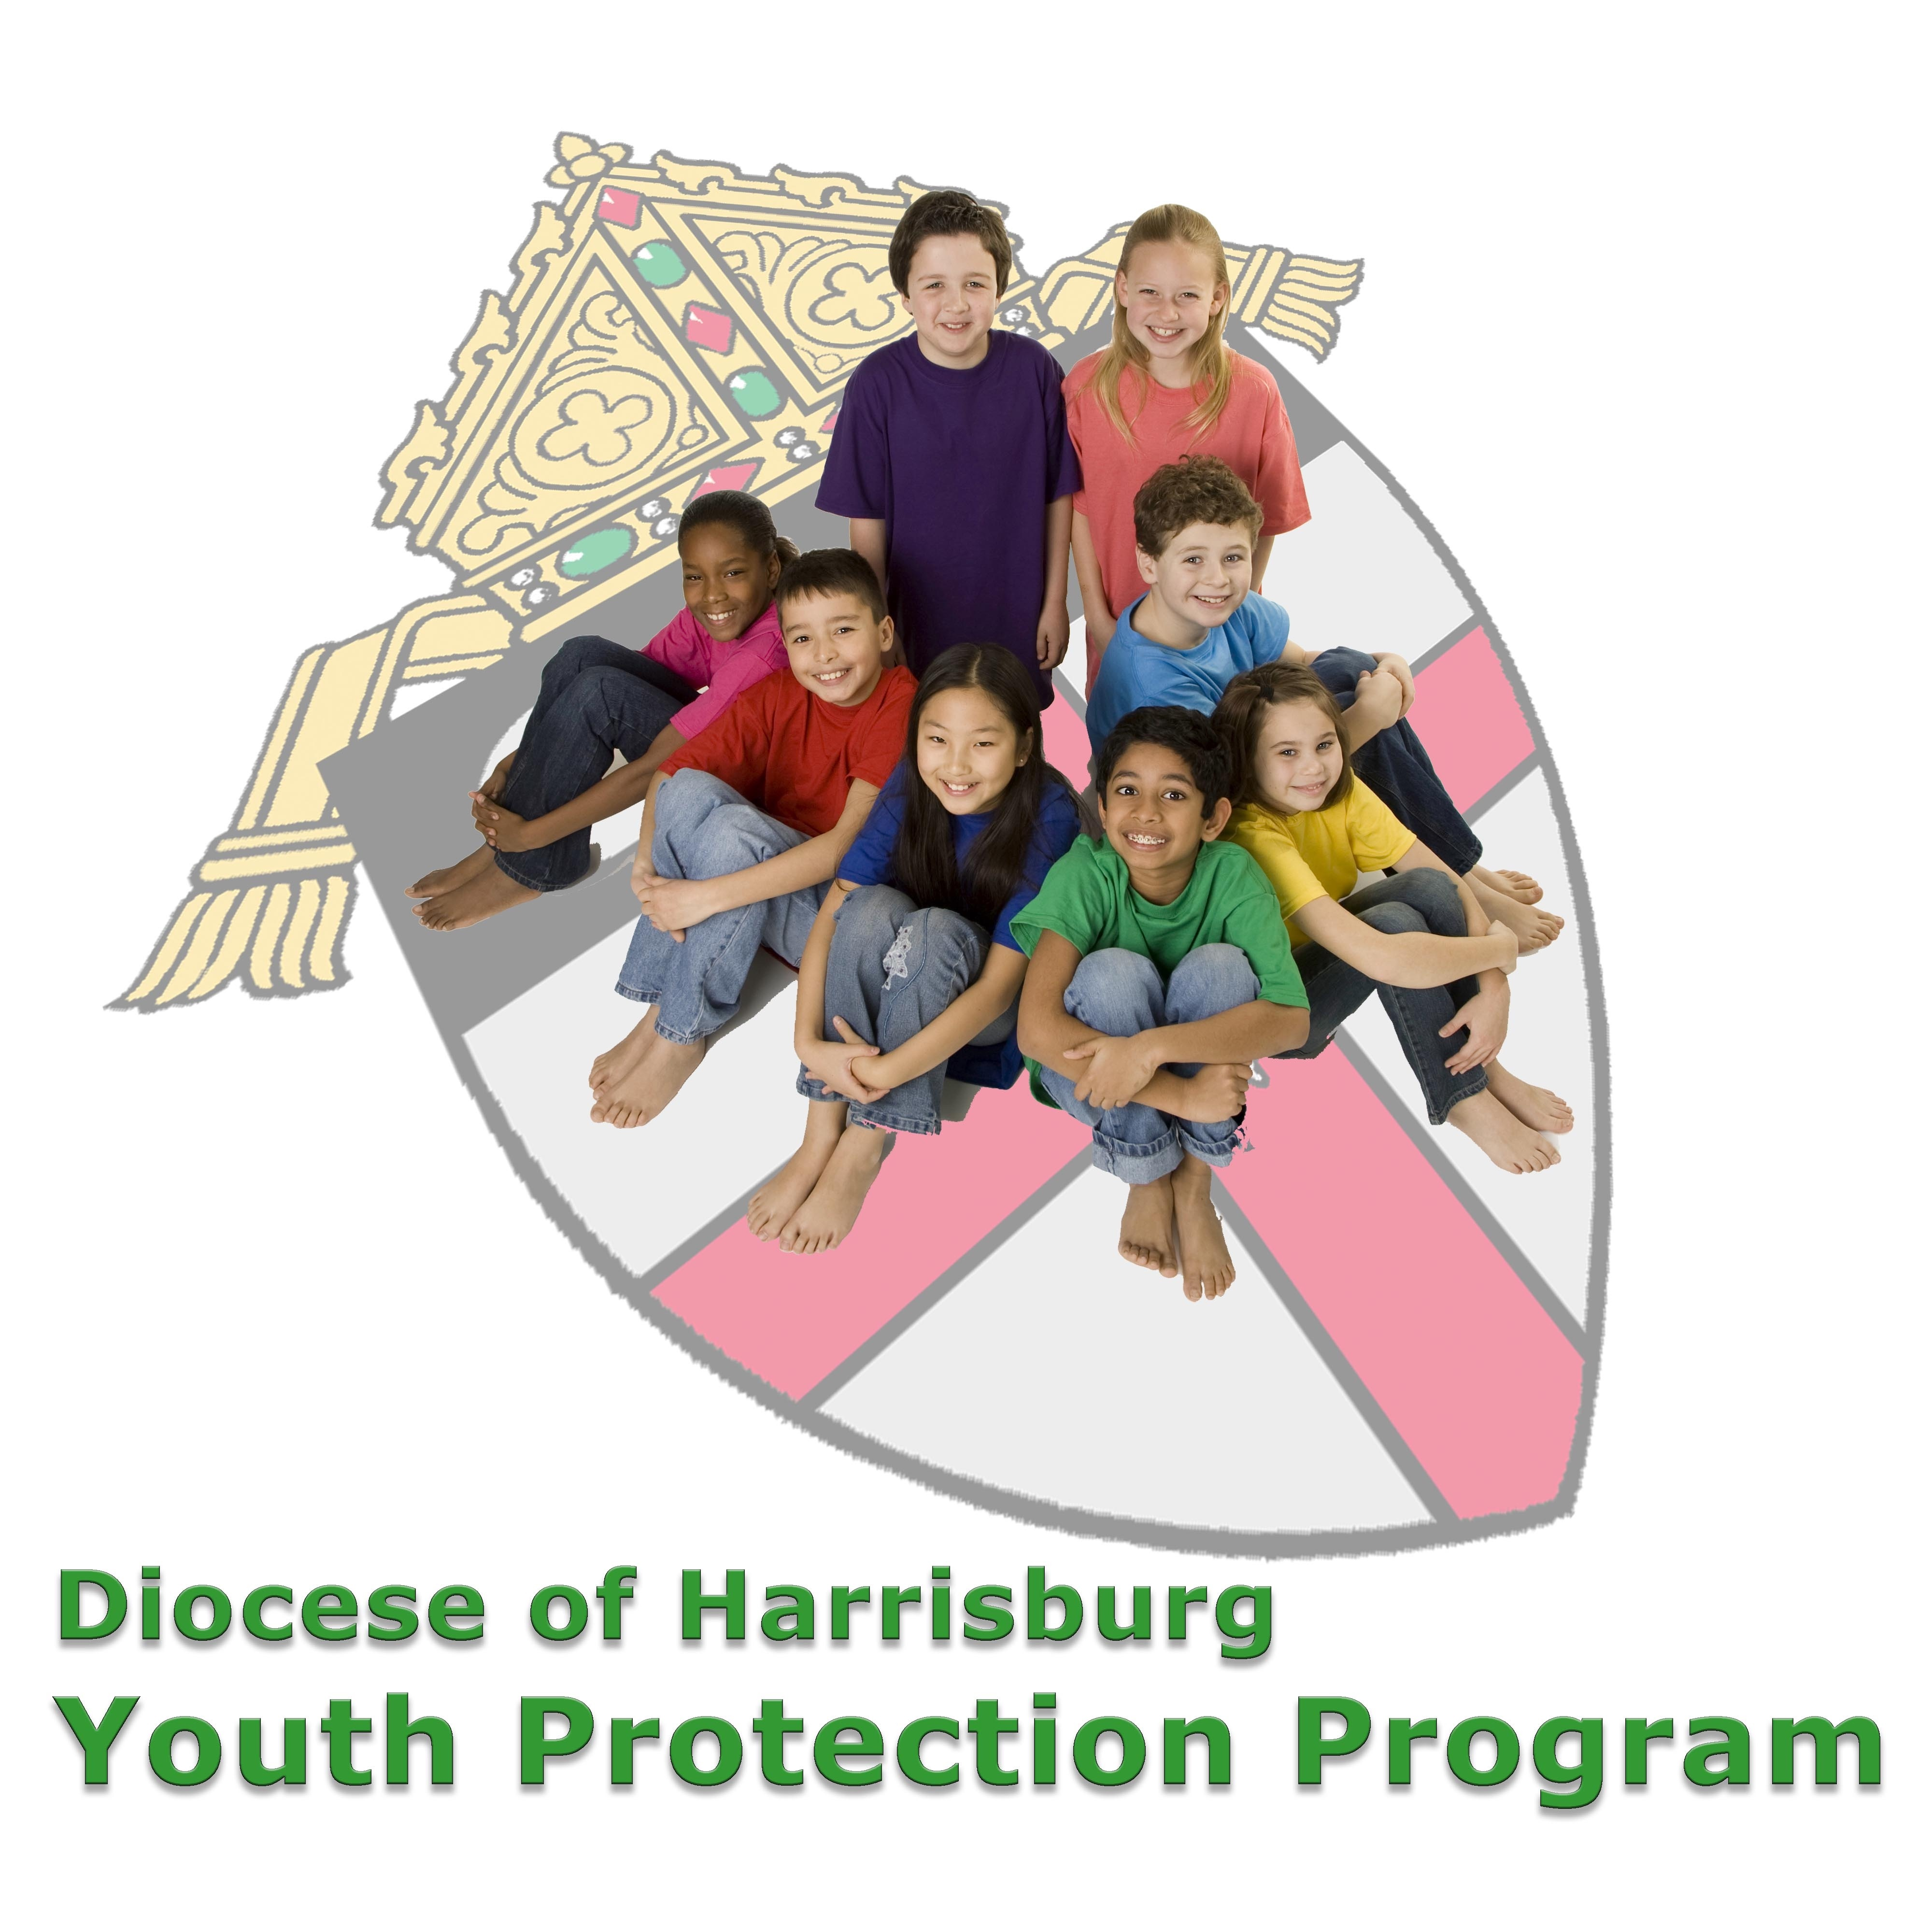 Diocese of Harrisburg Youth Protection Proram